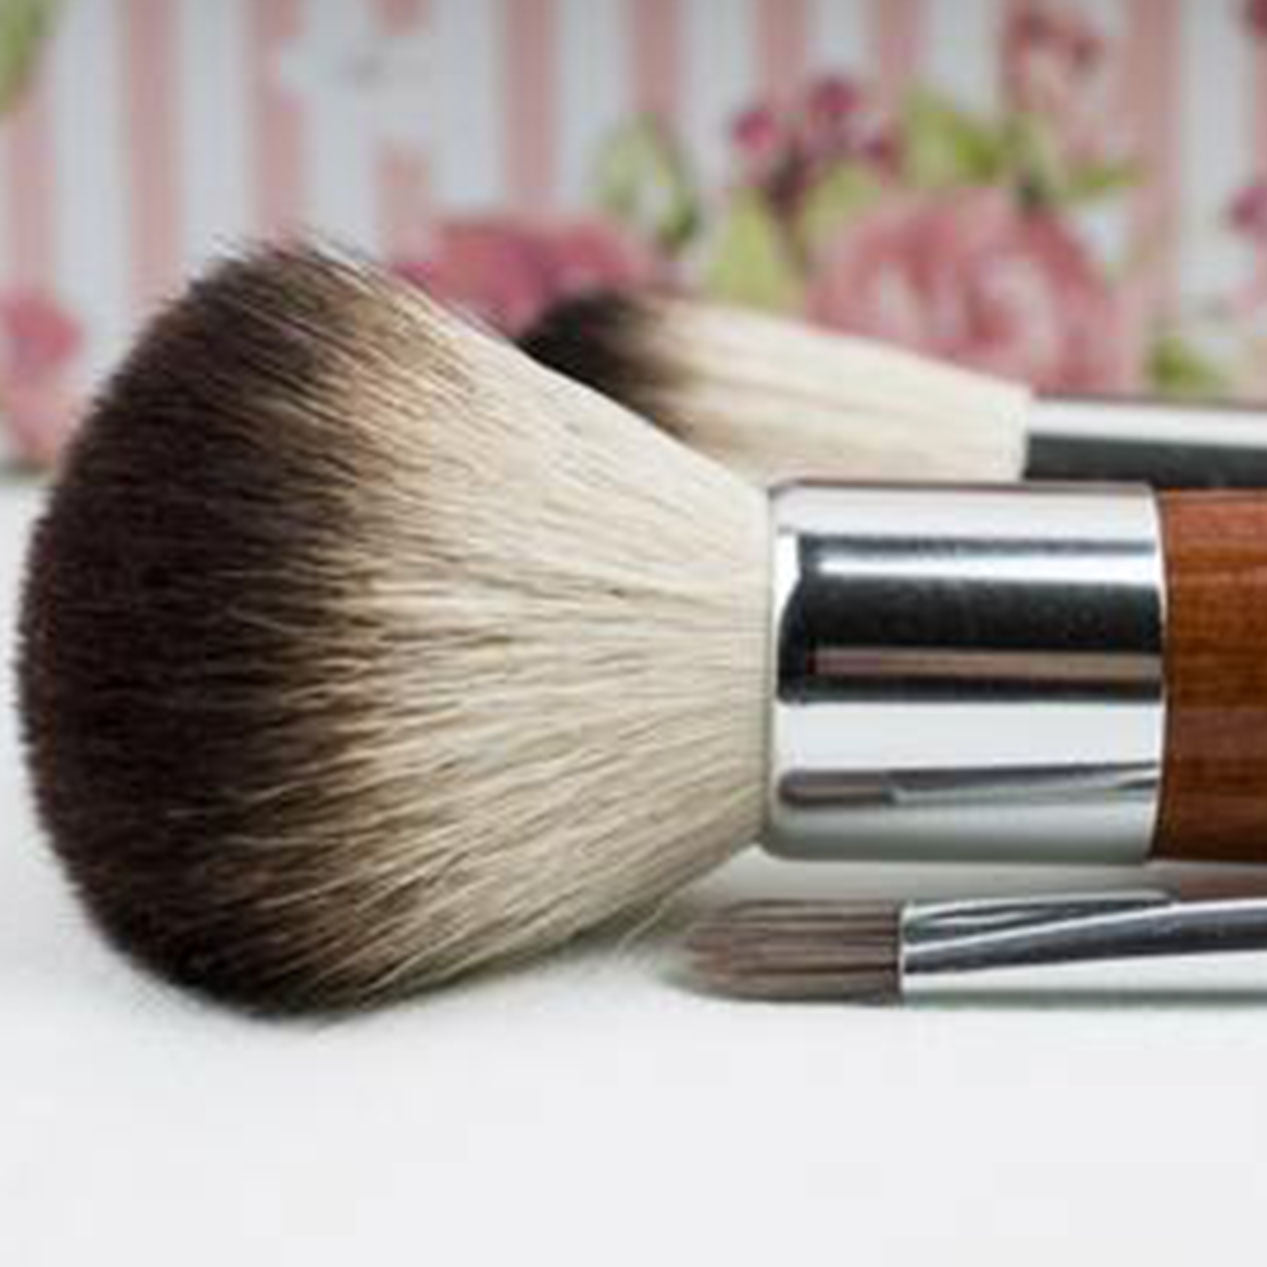 Why You Should Clean Your Makeup Brushes More Often